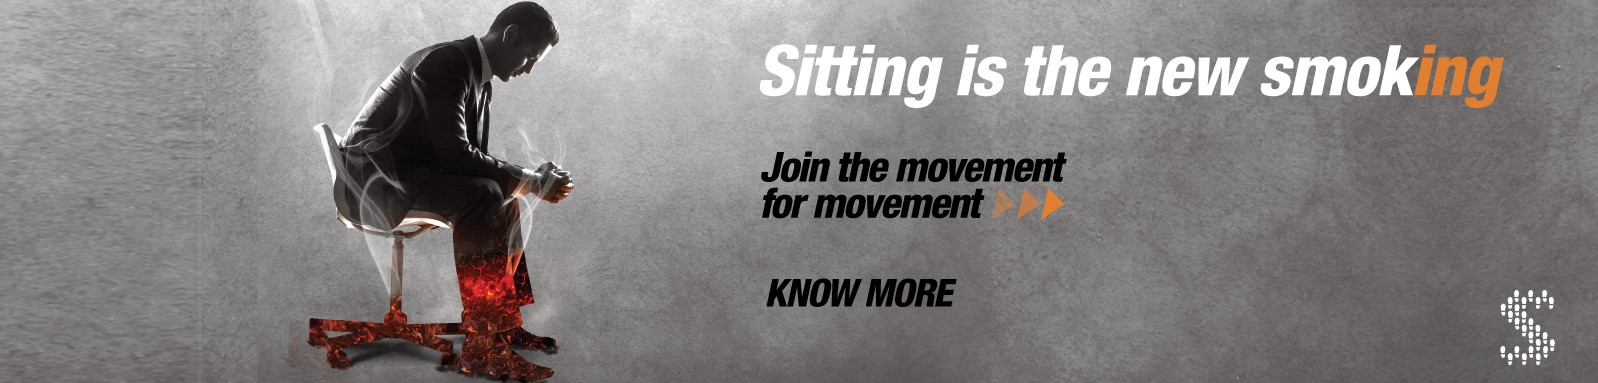 sitting is the new smoking join the moment for moment stepathlon